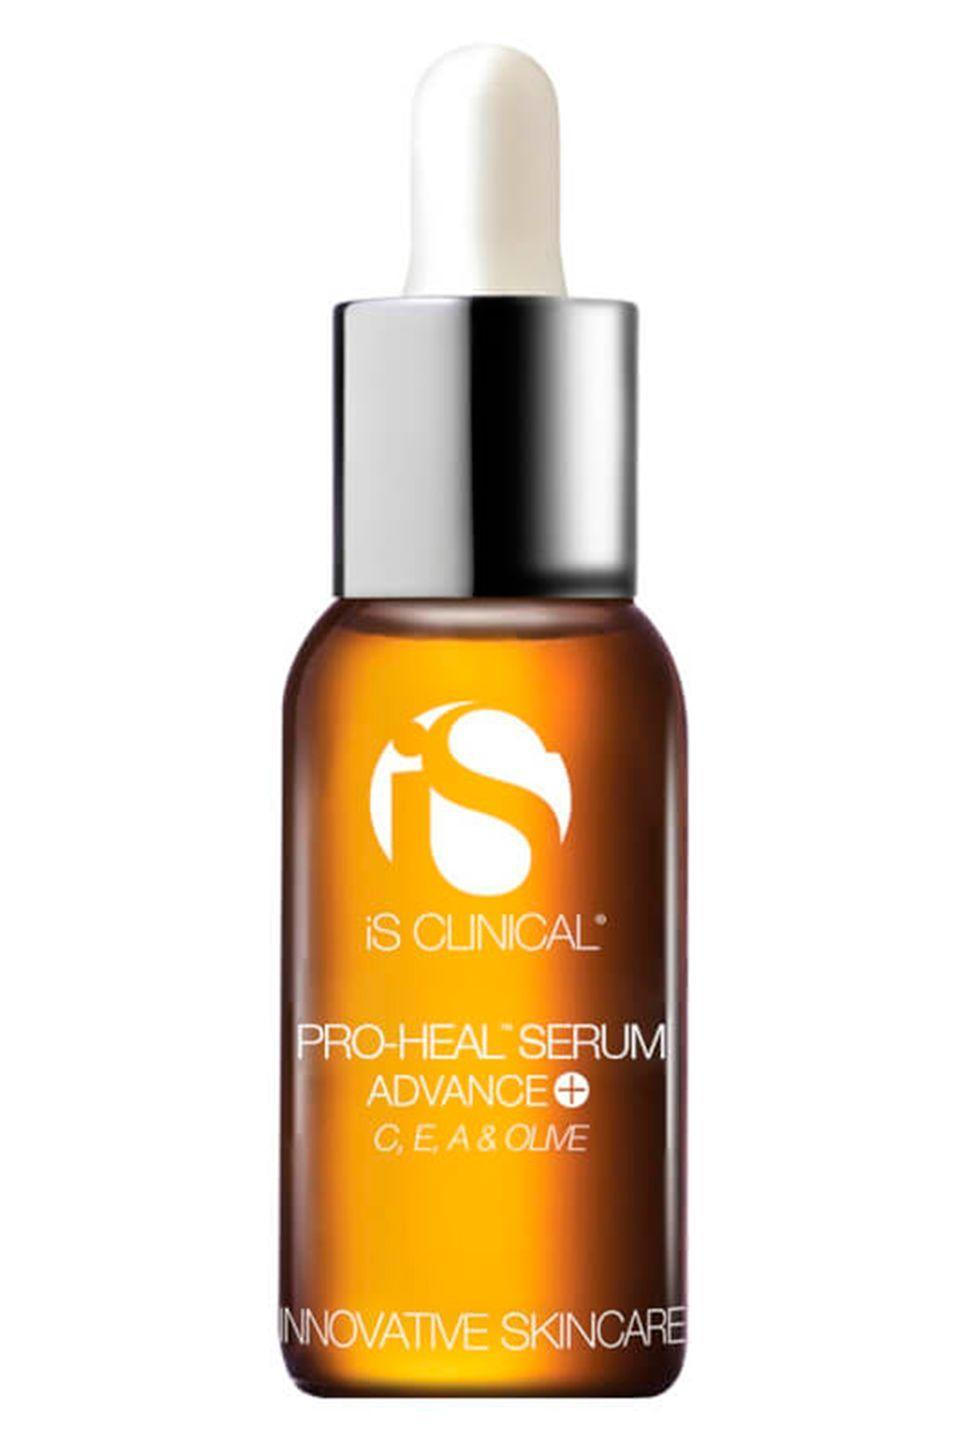 "<p><a class=""link rapid-noclick-resp"" href=""https://www.effortlessskin.com/p-3182-pro-heal-serum-advance-plus.aspx"" rel=""nofollow noopener"" target=""_blank"" data-ylk=""slk:buy now"">buy now</a></p><p>""Vitamin C is an important ingredient for women to look out for in their 20's. Not only does it help protect the skin from sun damage which can cause premature wrinkles, but it also promotes collagen production and evens out the skin tone, so it's great for keeping your complexion looking younger for longer."" Says Dr Preema Vig of the <a href=""http://drpreema.com/"" rel=""nofollow noopener"" target=""_blank"" data-ylk=""slk:Dr Preema London Clinic"" class=""link rapid-noclick-resp"">Dr Preema London Clinic</a>.</p><p>""I use the iS Clinical Pro Heal Serum Advance+ which features scientifically advanced Vitamin C time release technology in a 15% concentration - it delivers anti-oxidant protection and exceptional healing properties."" Says Dr Preema.<br></p>"